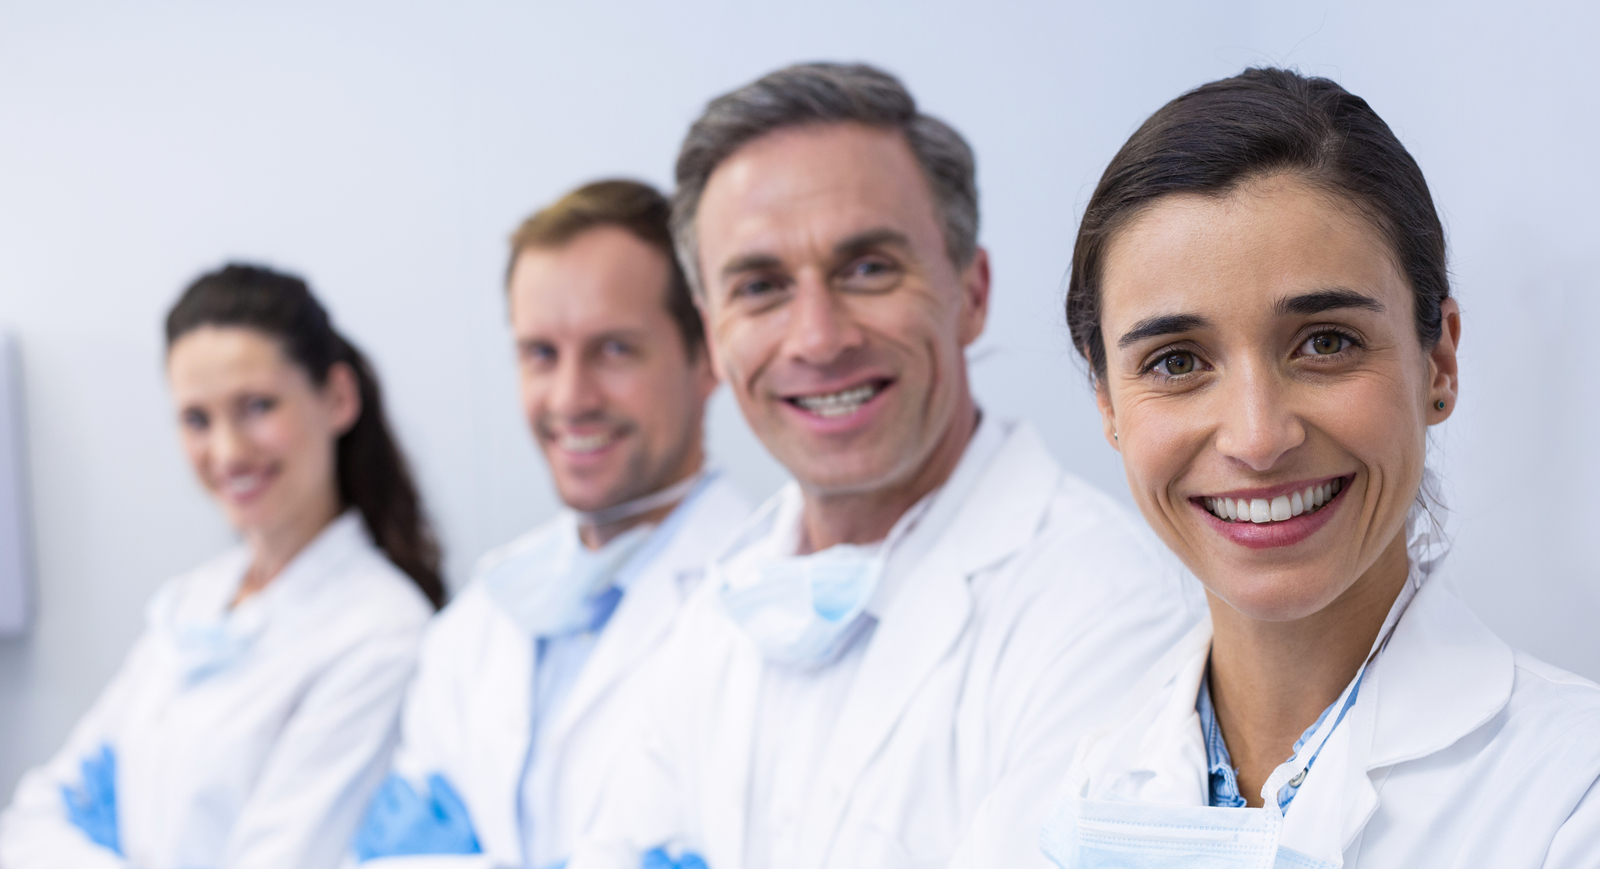 Types Of Dentists Dds Dmd Dental Specialists